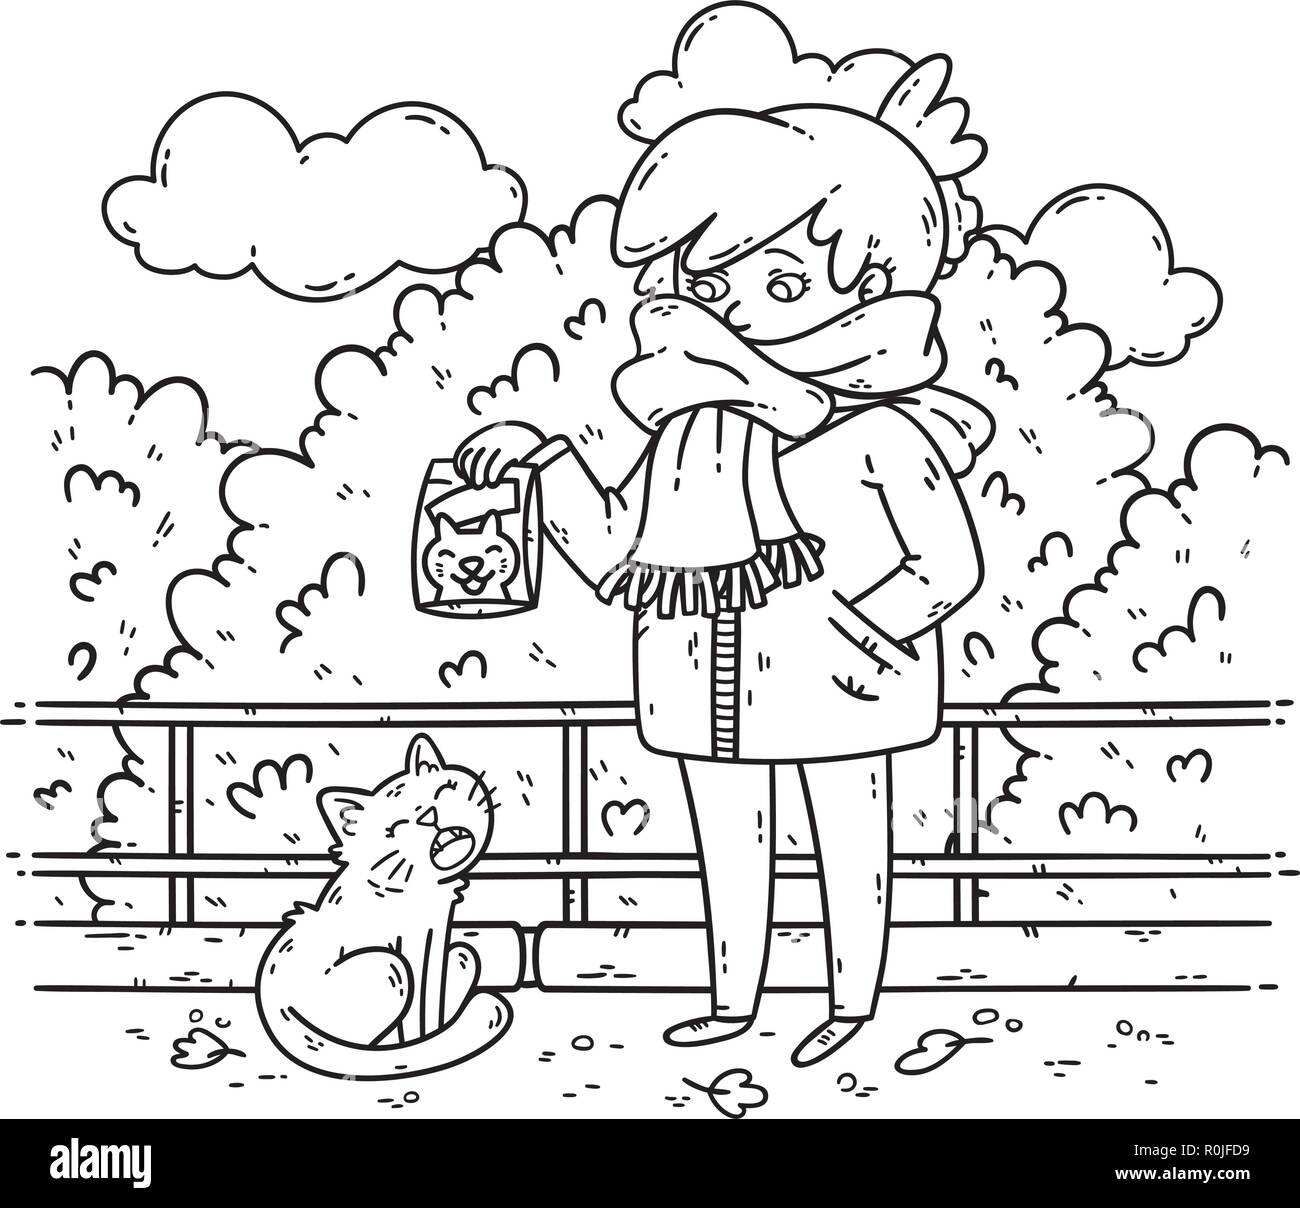 A young woman is planning to feed a stray cat. Coloring illustration for kids. Black and white illustration. Problems with stray animals. Vector illus - Stock Image